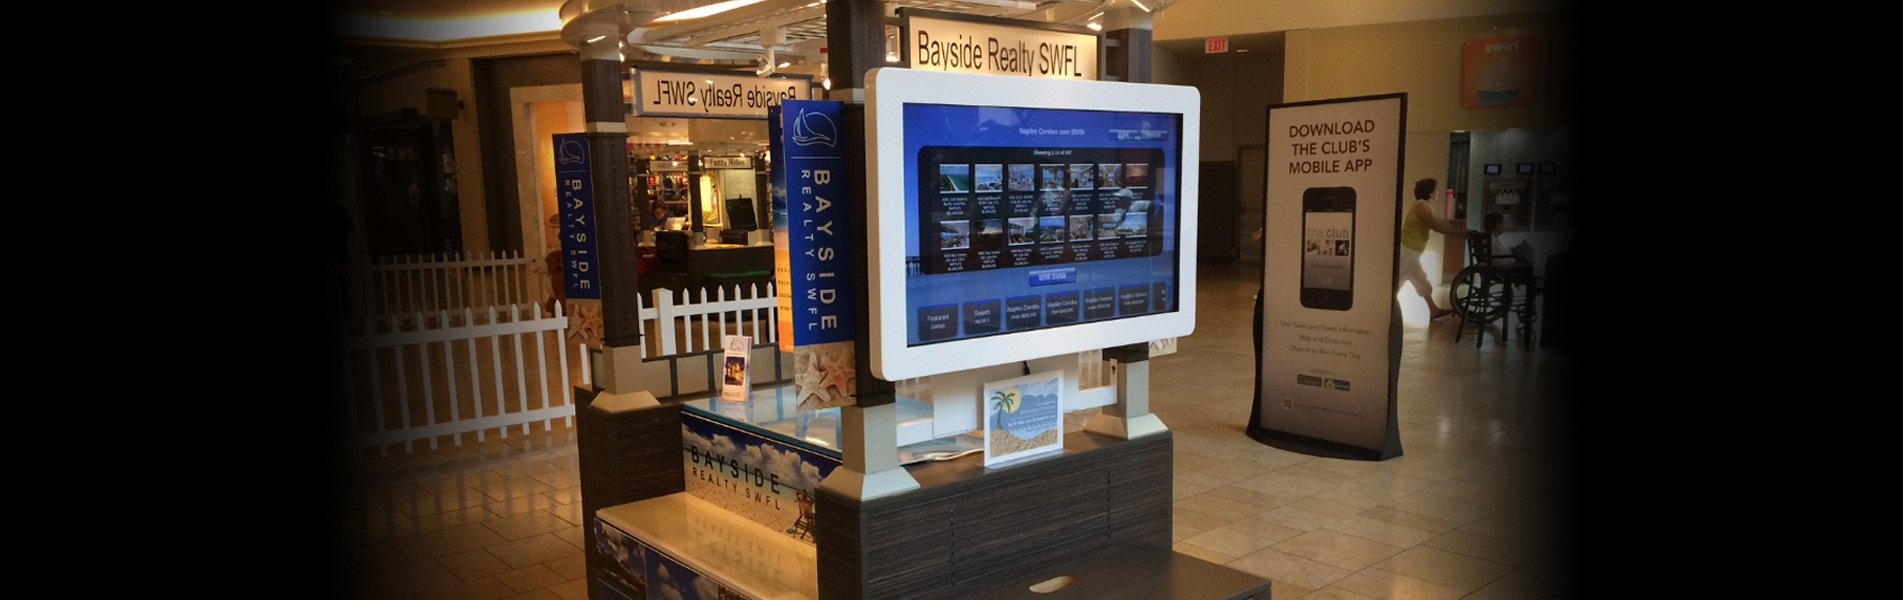 multitouch overlay bayside realty